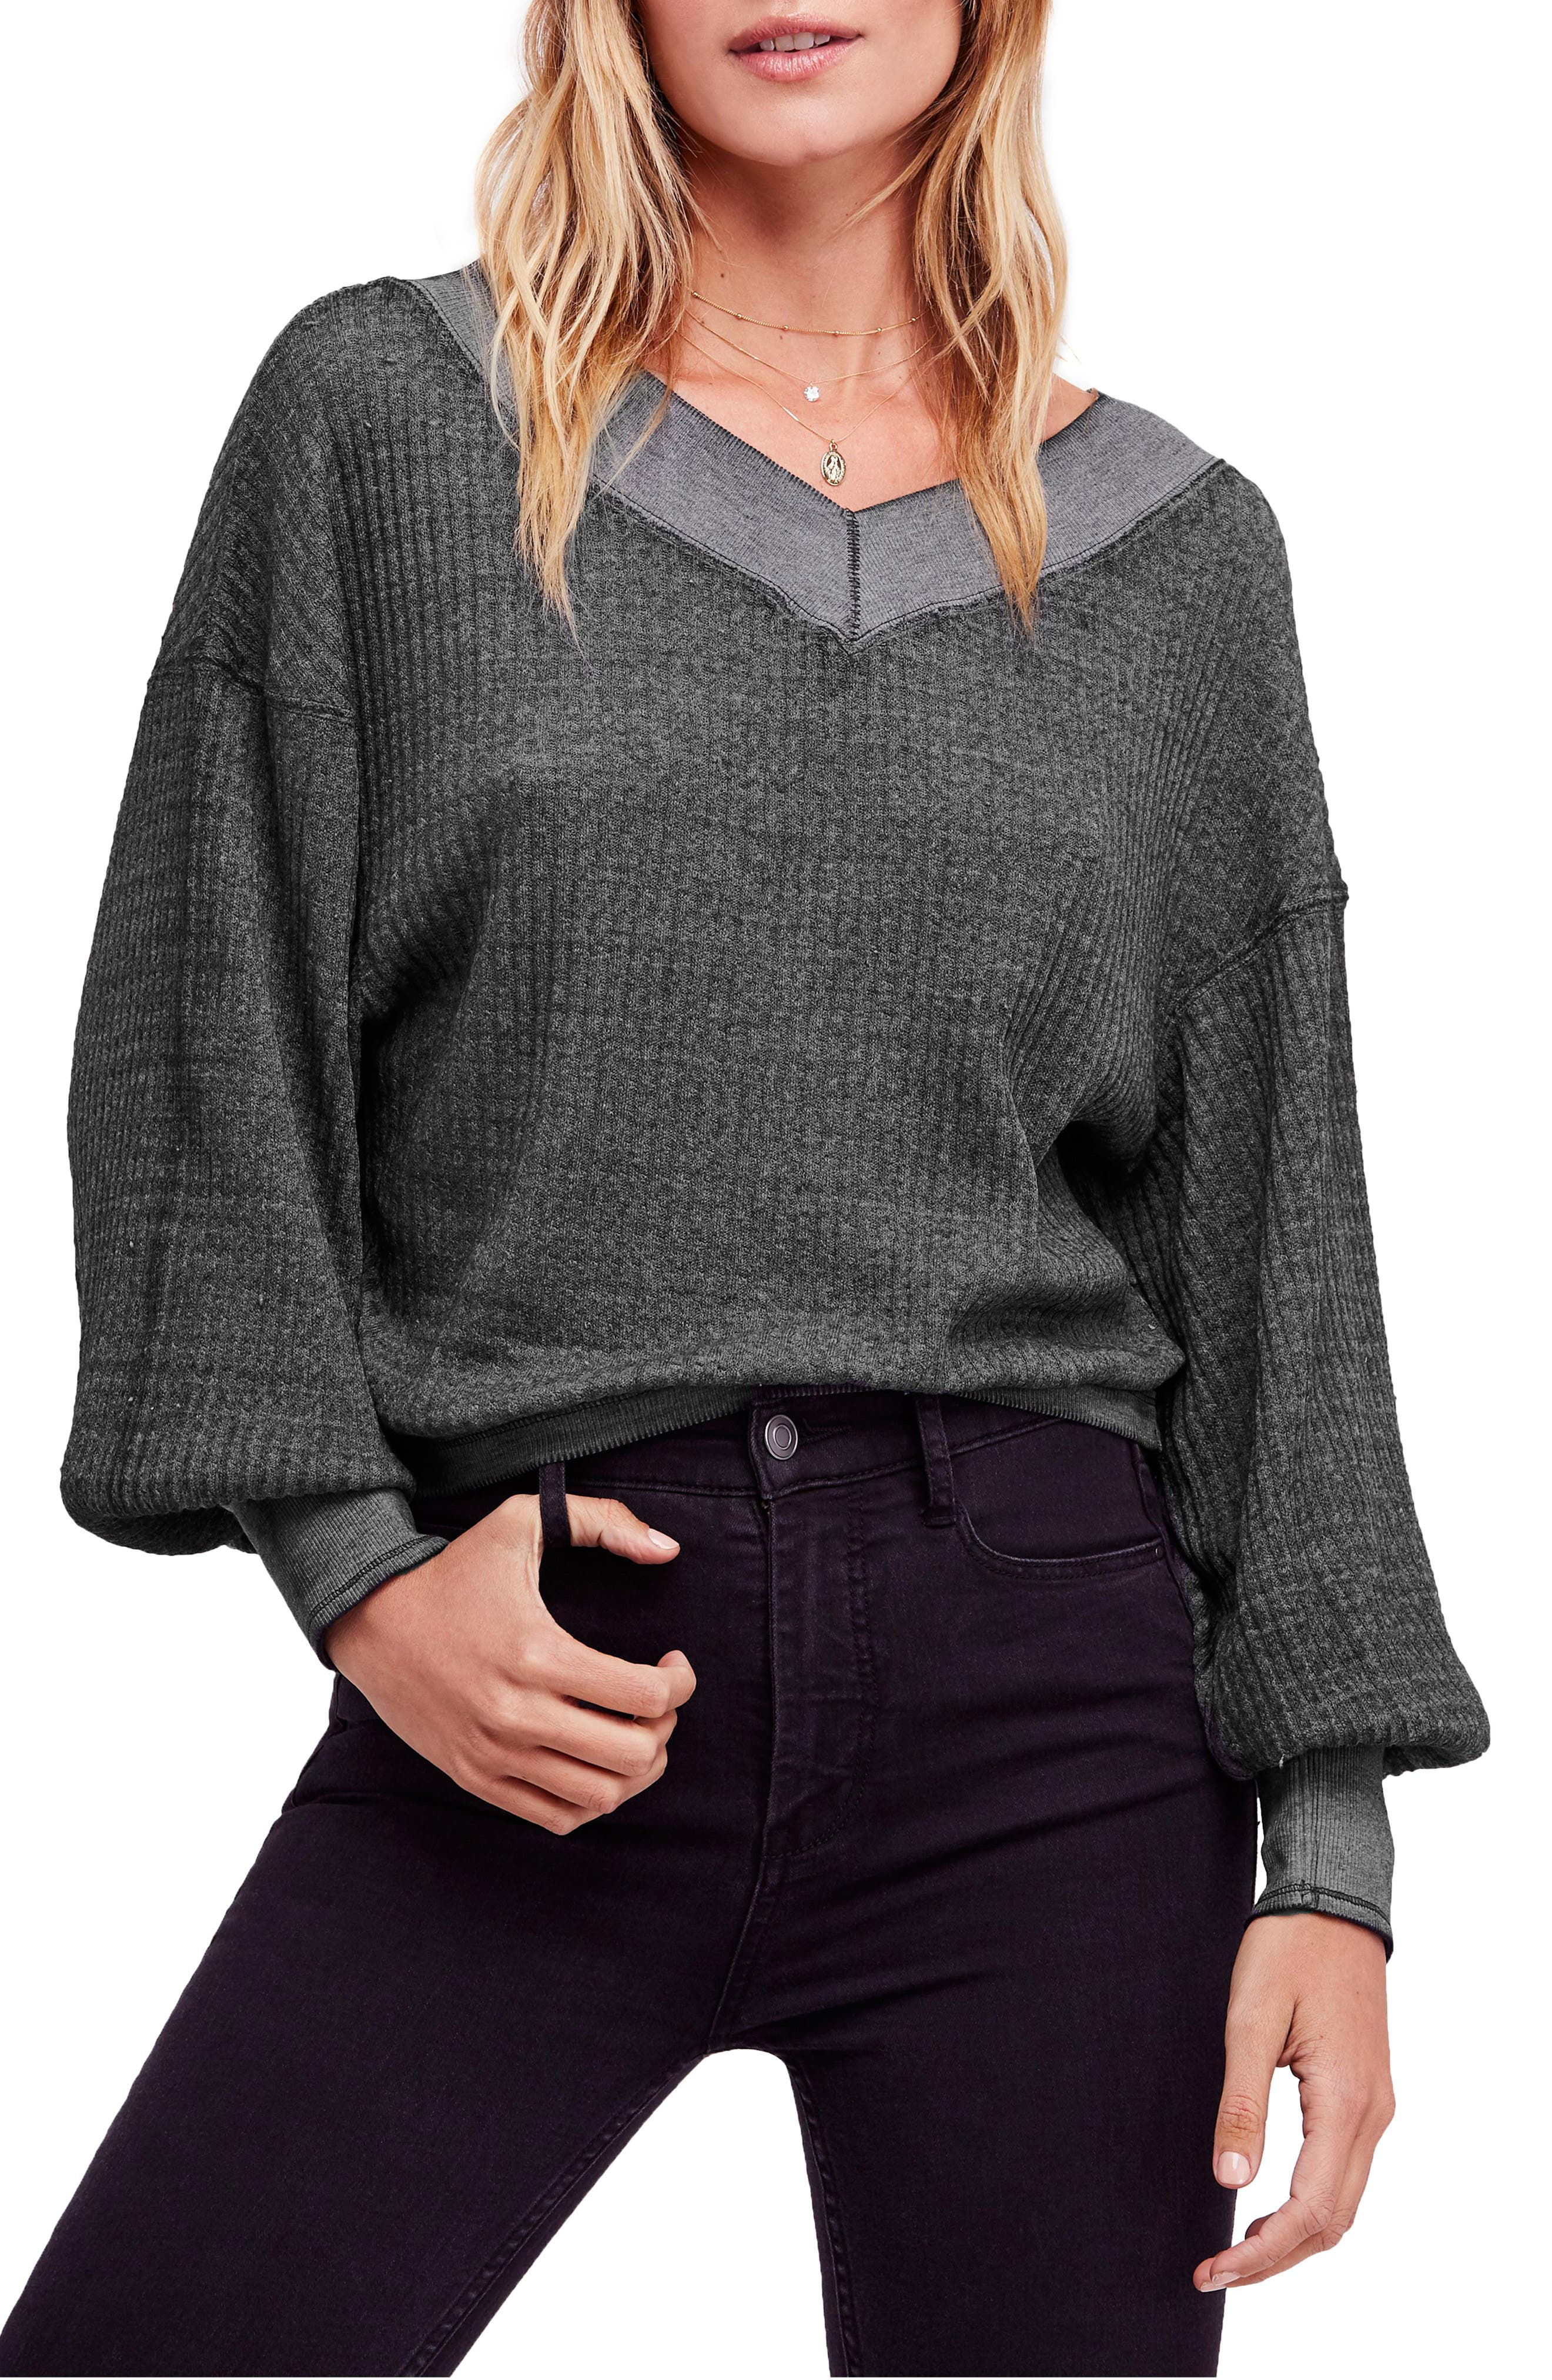 FREE PEOPLE We the Free by Free People South Side Thermal Top, Main, color, BLACK